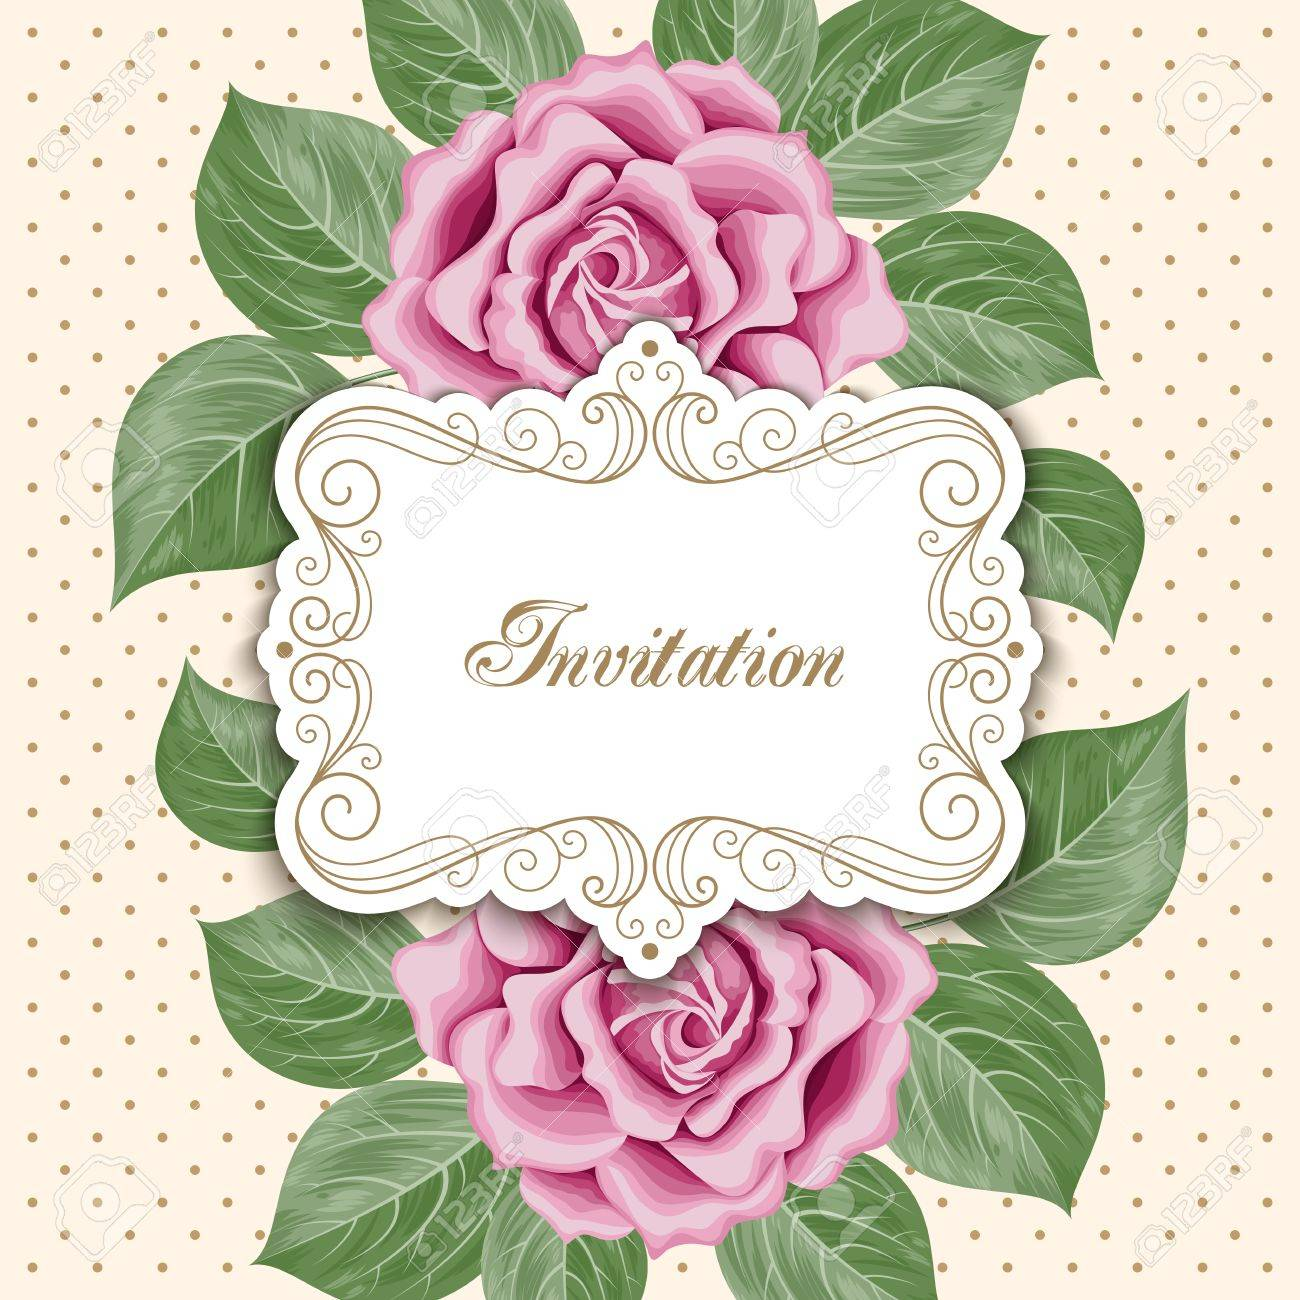 Vintage Floral Invitation Template With Hand Drawn Flowers. Royalty ...